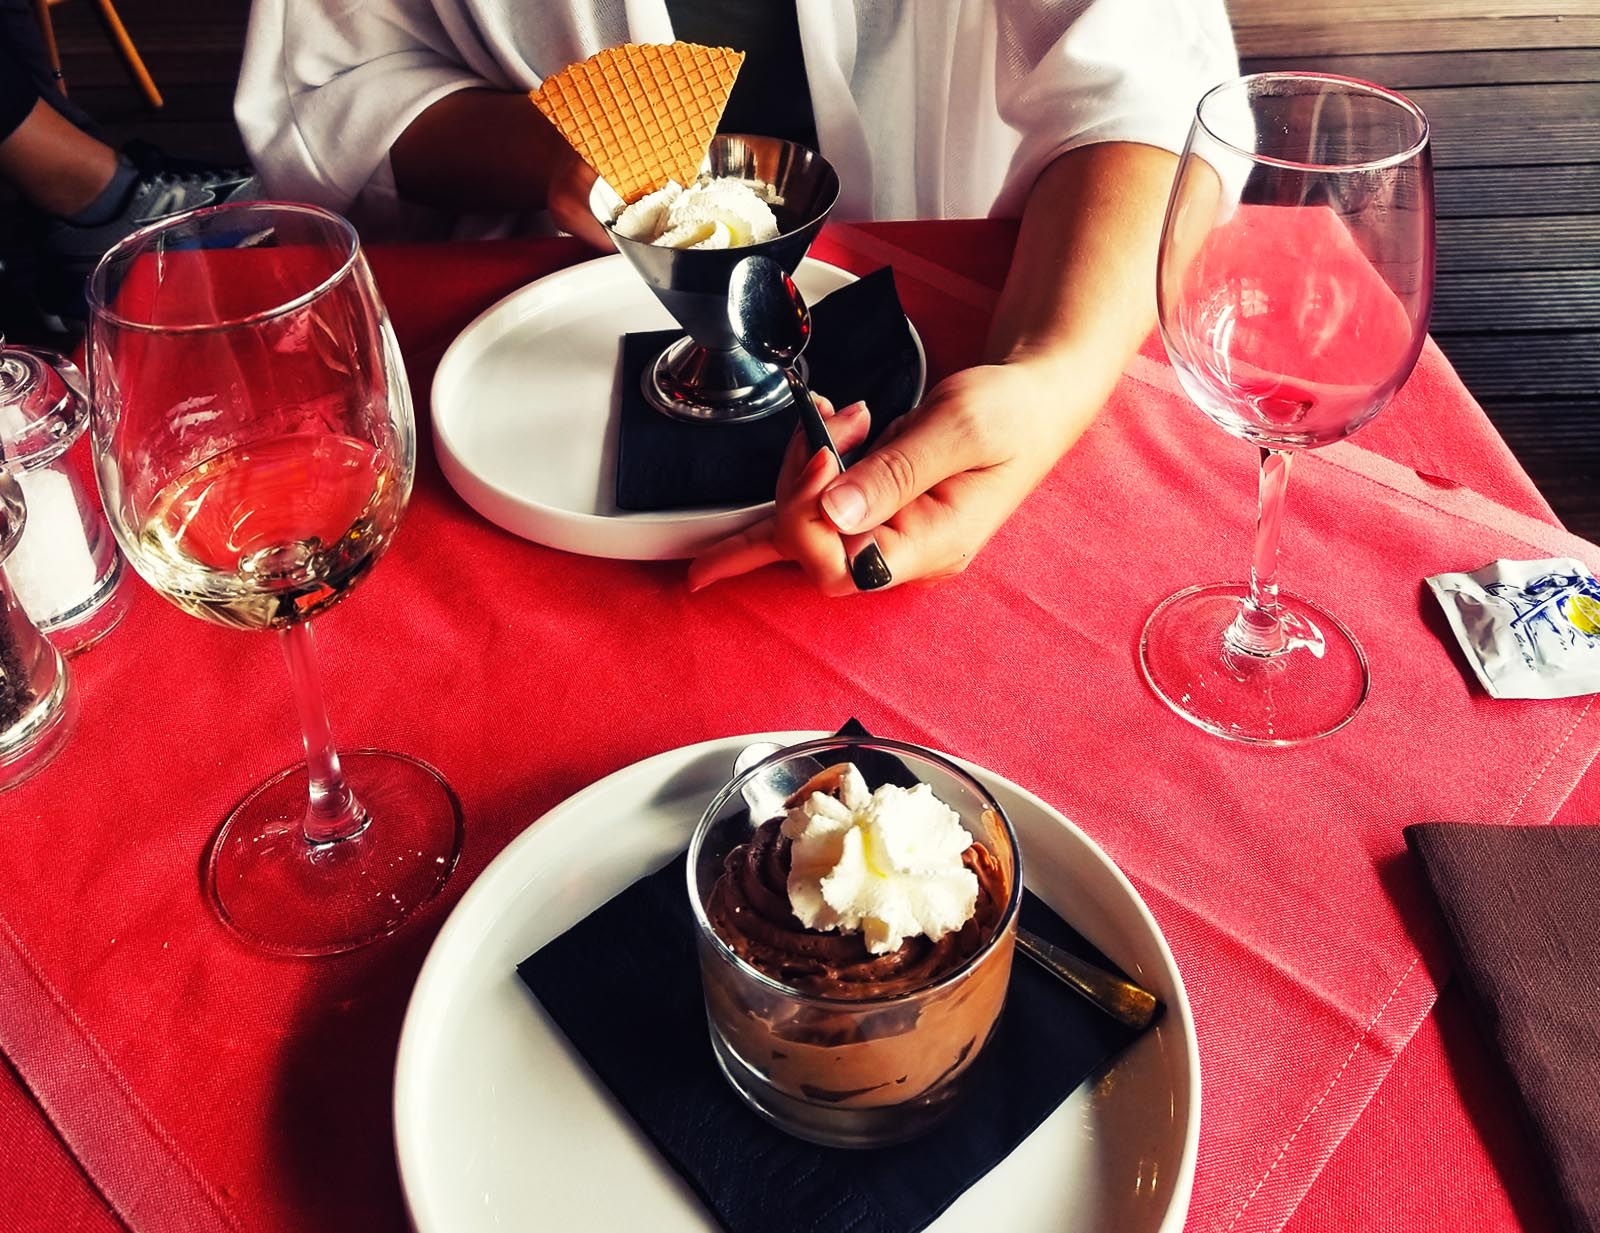 Two delicious desserts served up in Bruges